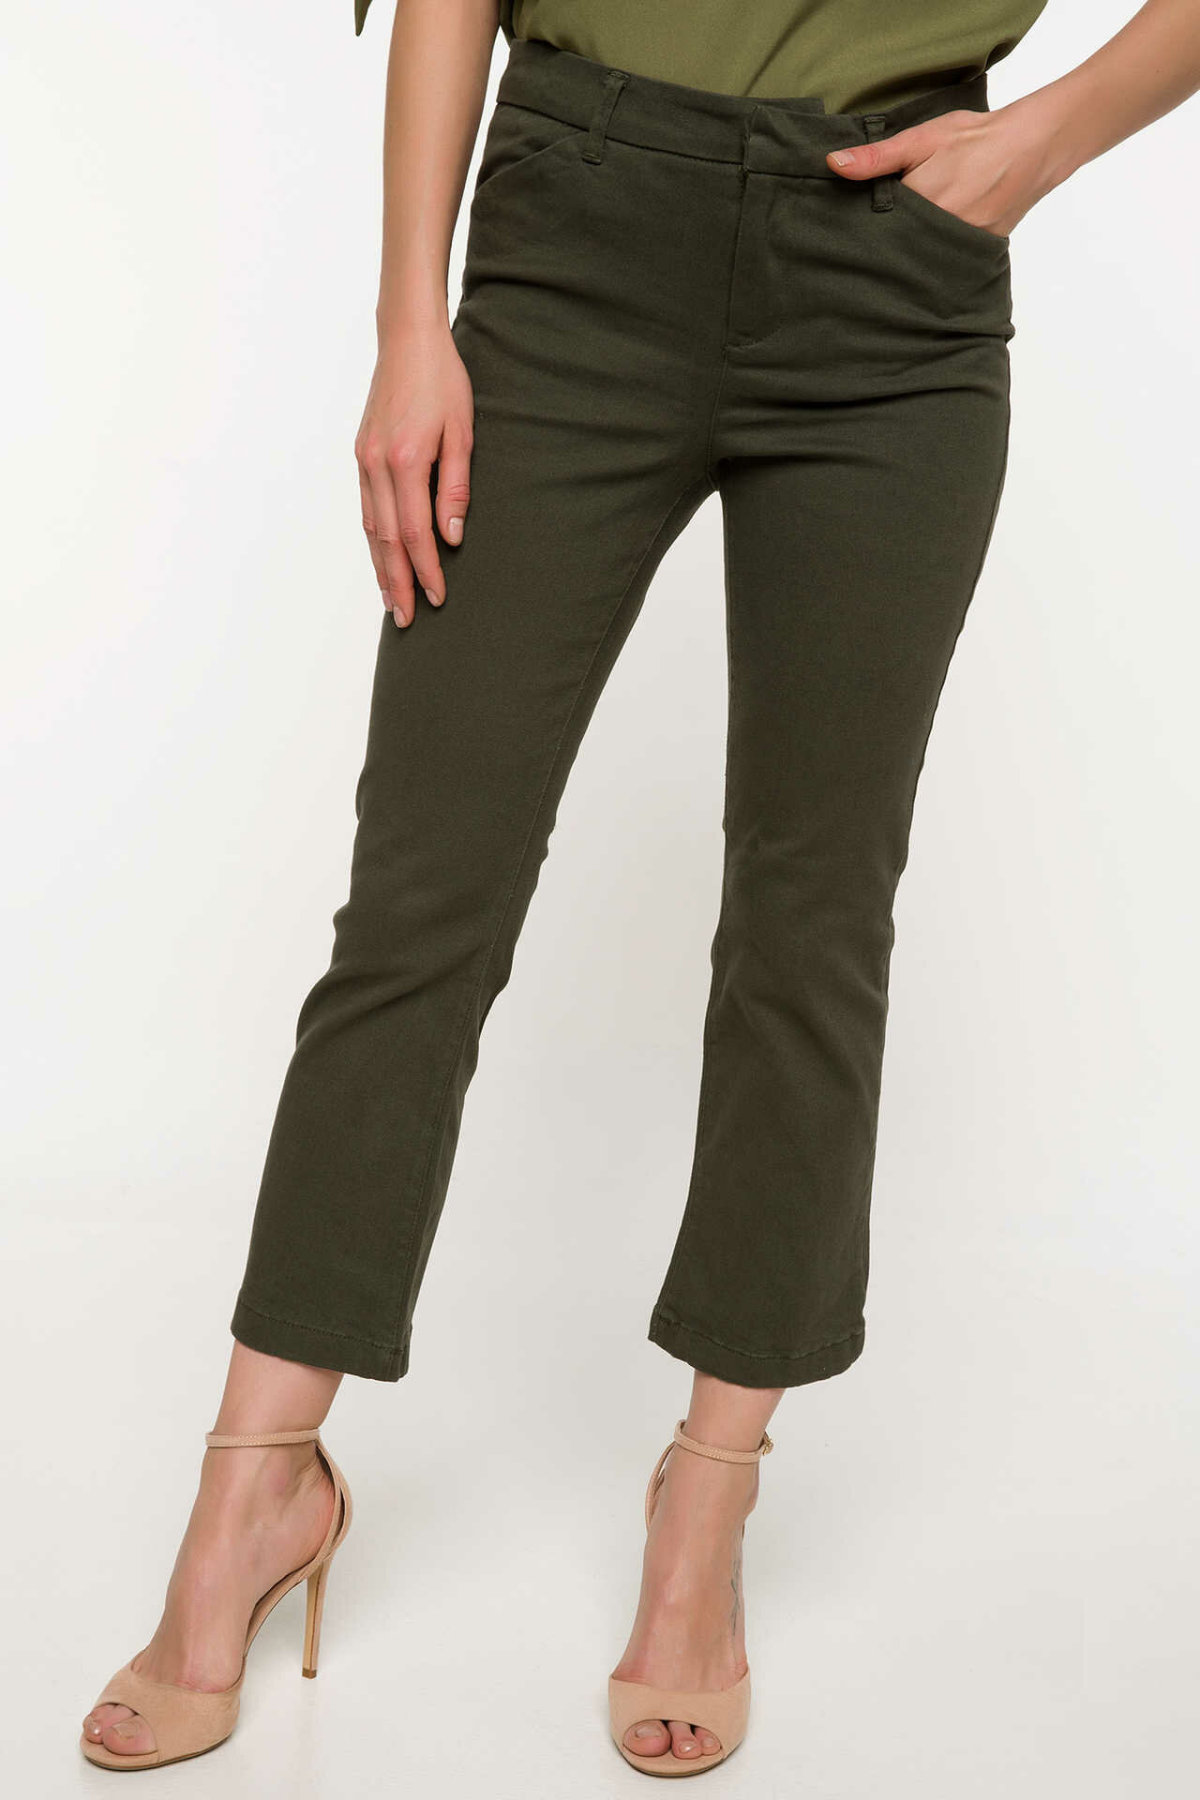 DeFacto Woman Spring Solid Color Ninth Pants Women Casual Skinny Black Army Green Long Pants Lady Bottoms Trousers-I9930AZ18SP